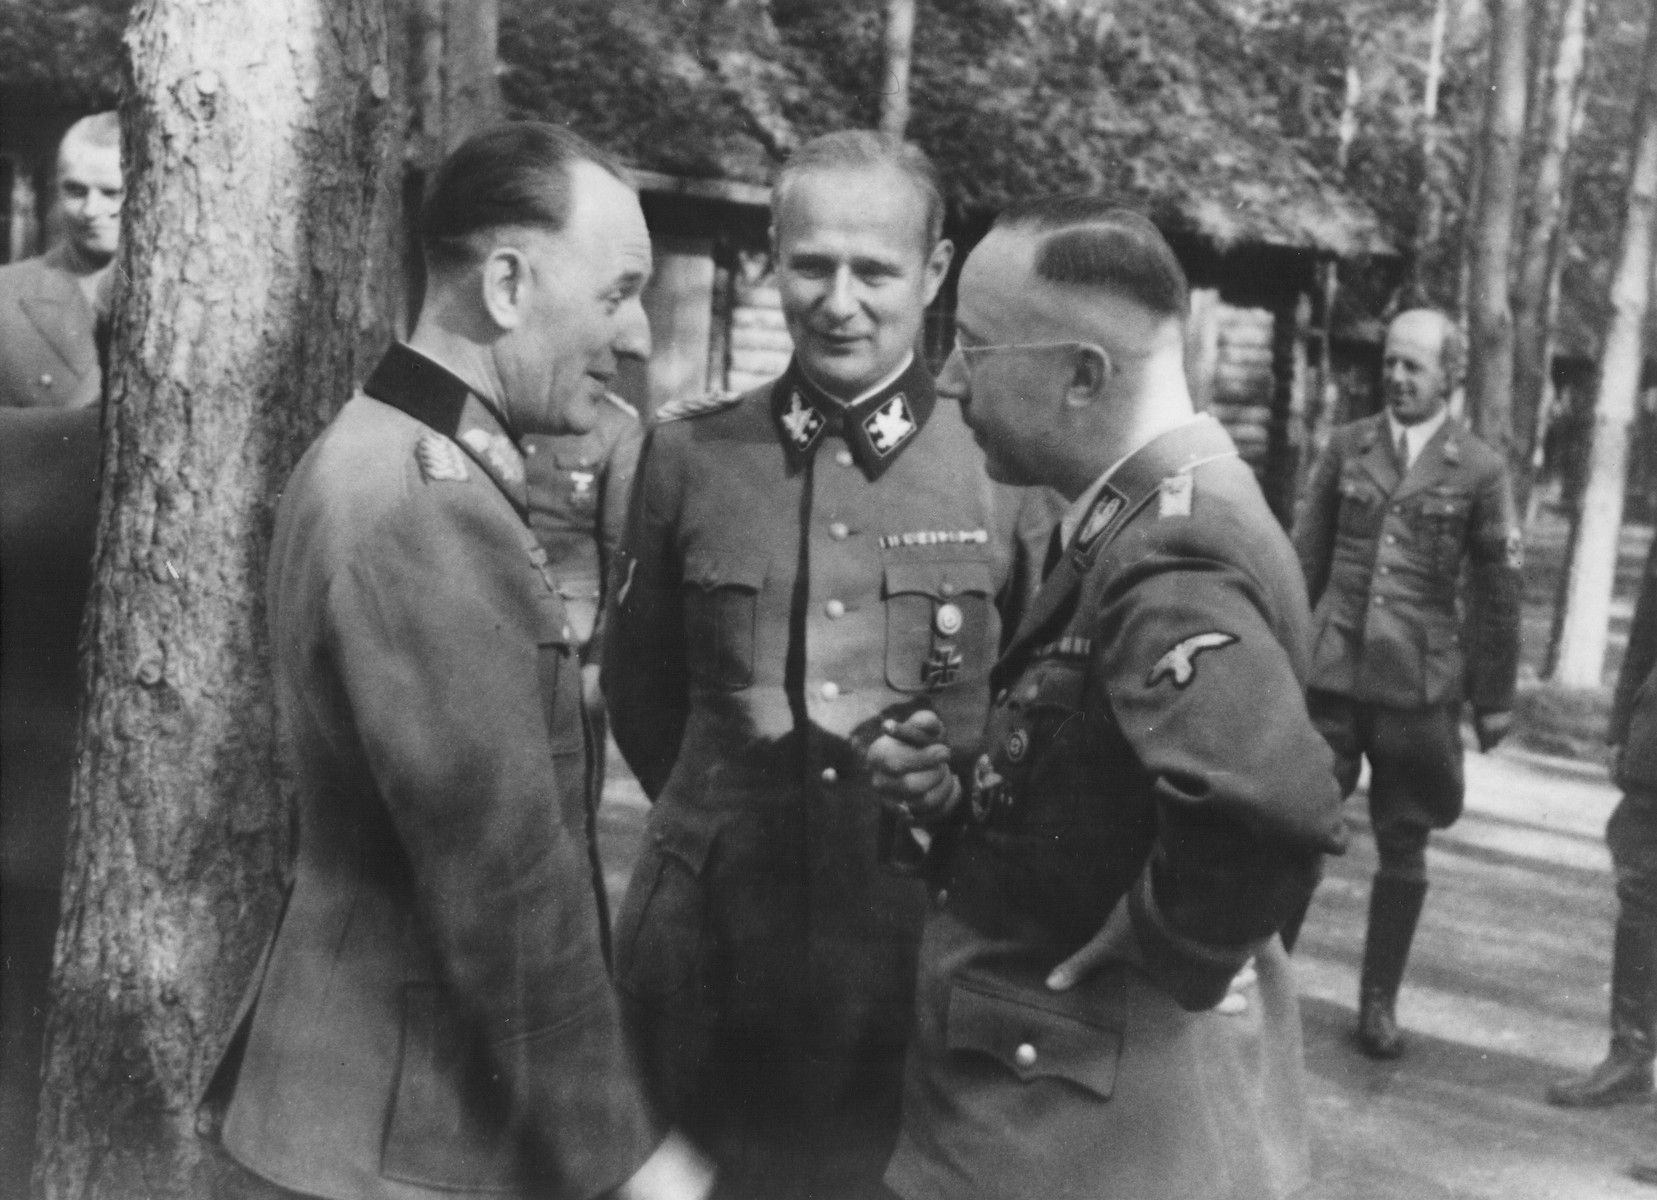 Reichsfuehrer-SS Heinrich Himmler converses with two German officers.  Pictured in the foreground from left to right are: General Rudolf Schmundt, Karl Wolff and Heinrich Himmler.  In the back on the far right is SS-Gruppenfuehrer Helmut Friedrichs.